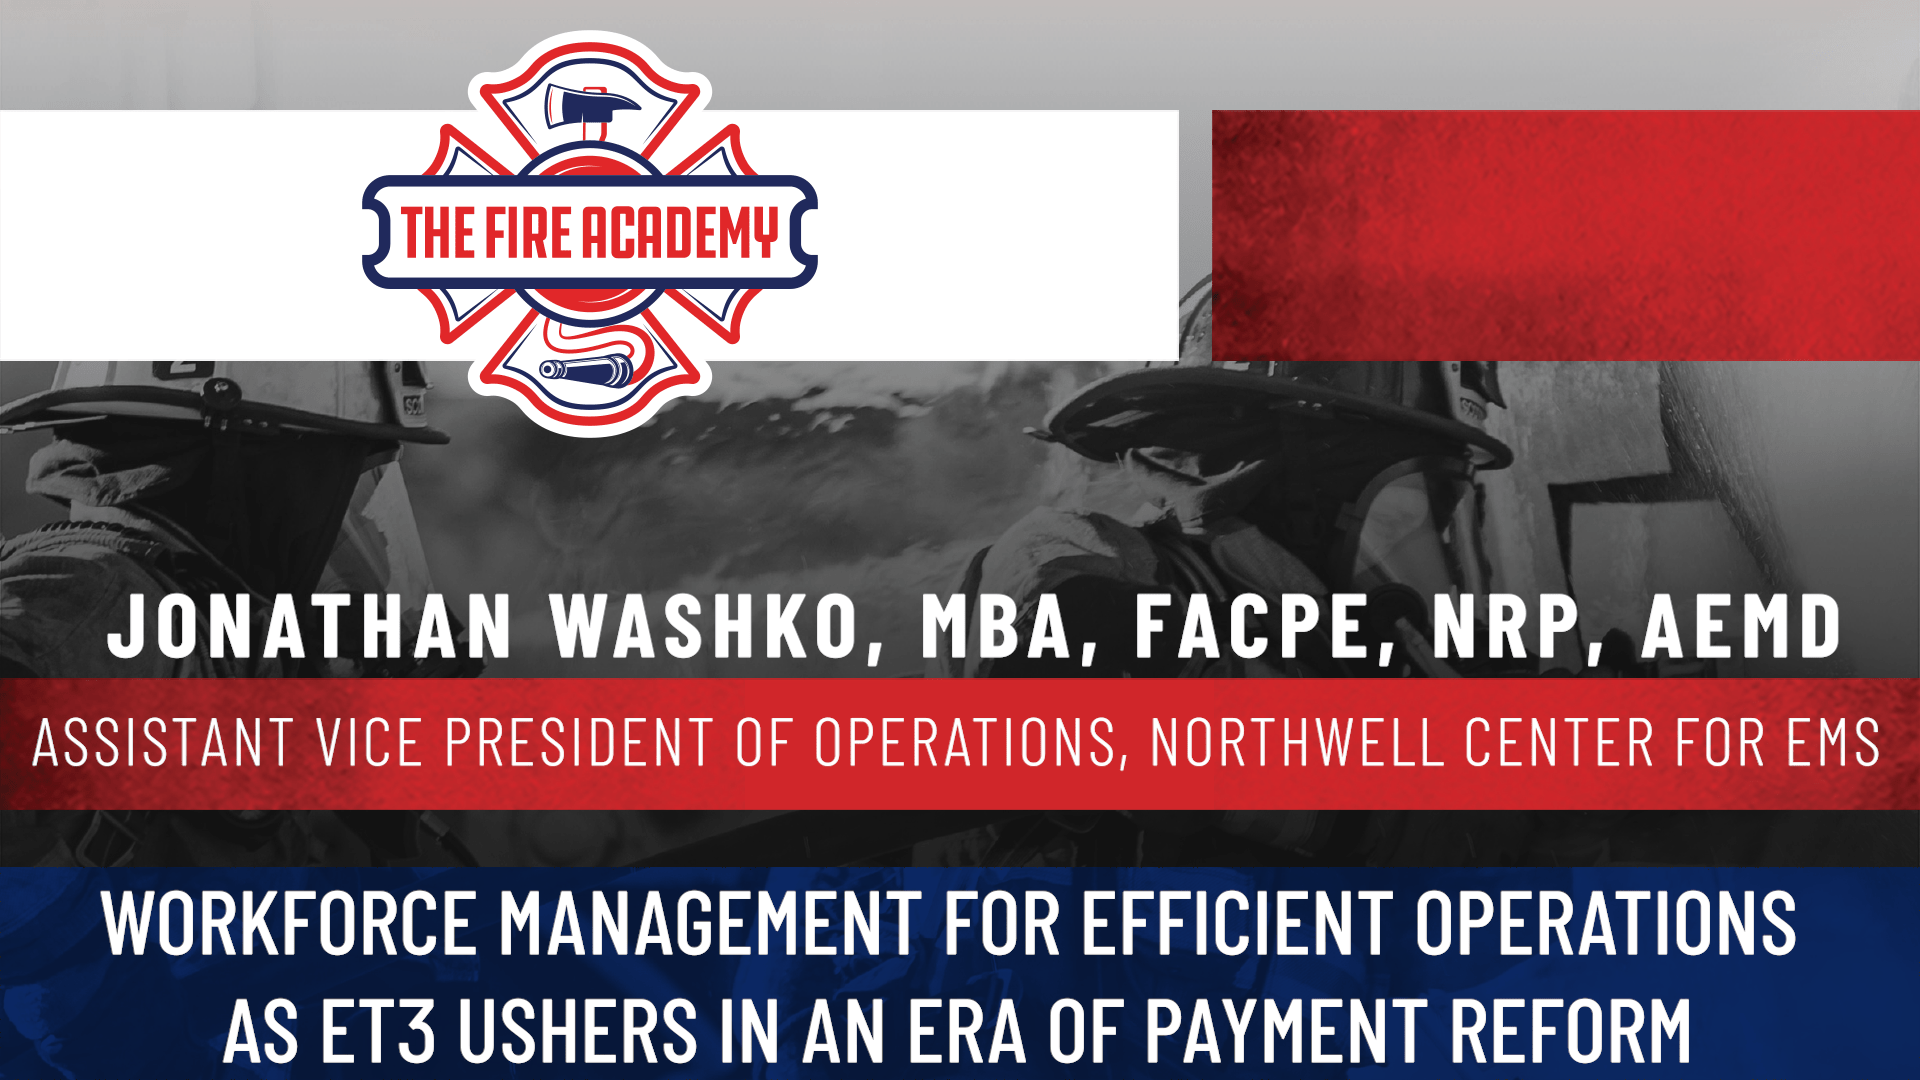 Workforce Management for Efficient Operations as ET3 Ushers in an Era of Payment Reform